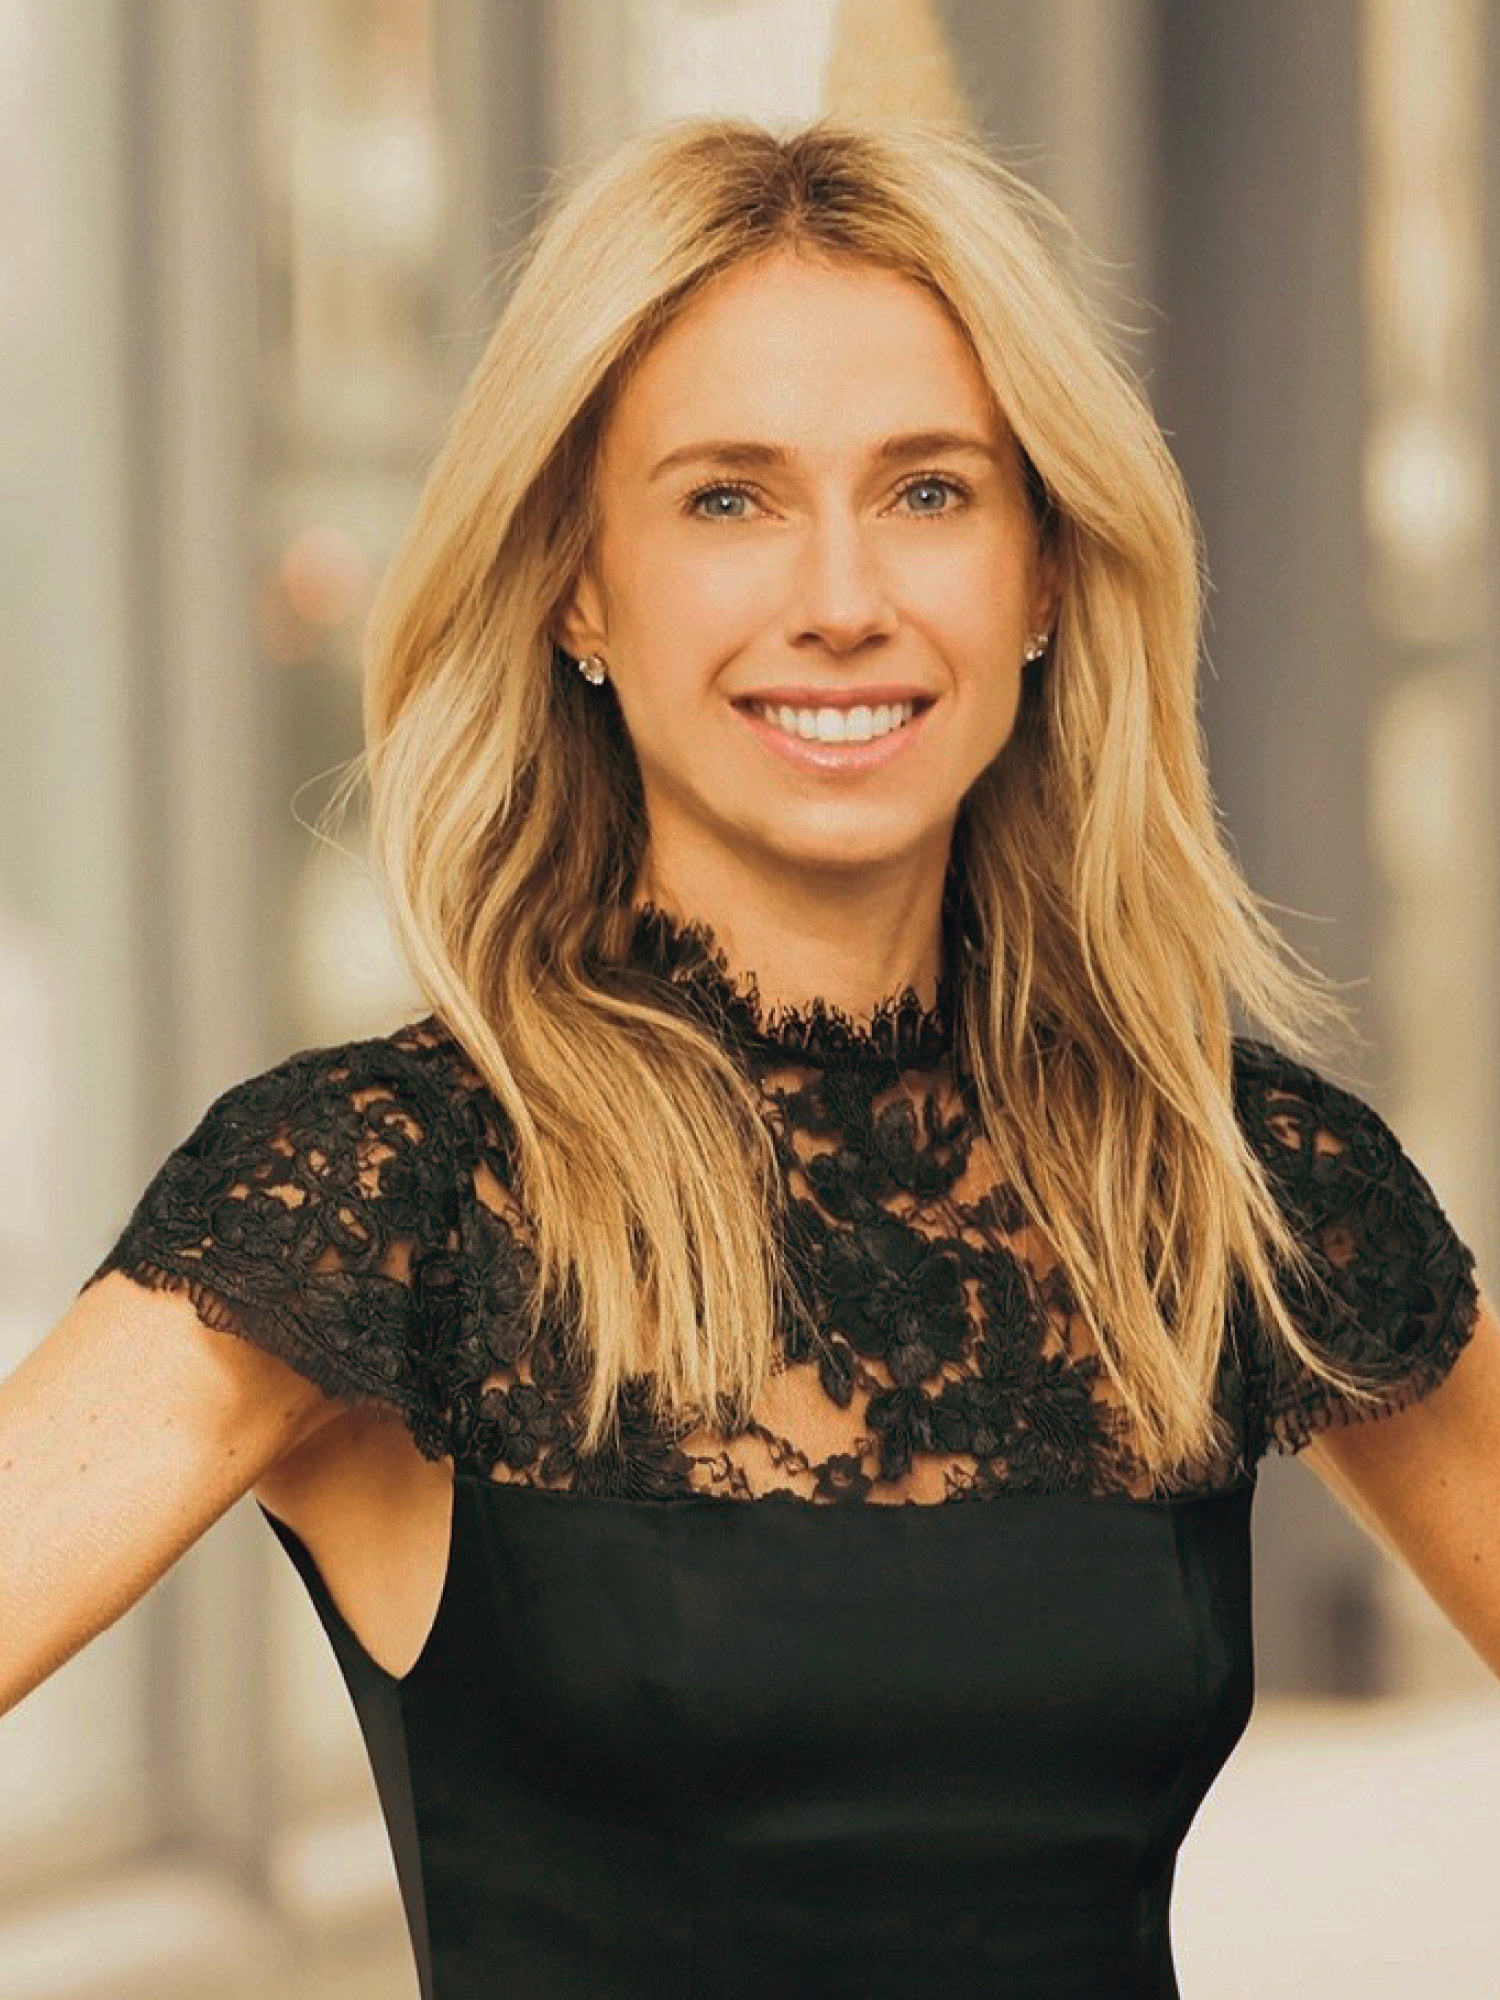 Amber Roberts, a top realtor in New York City for Corcoran, a real estate firm in Chelsea/Flatiron.